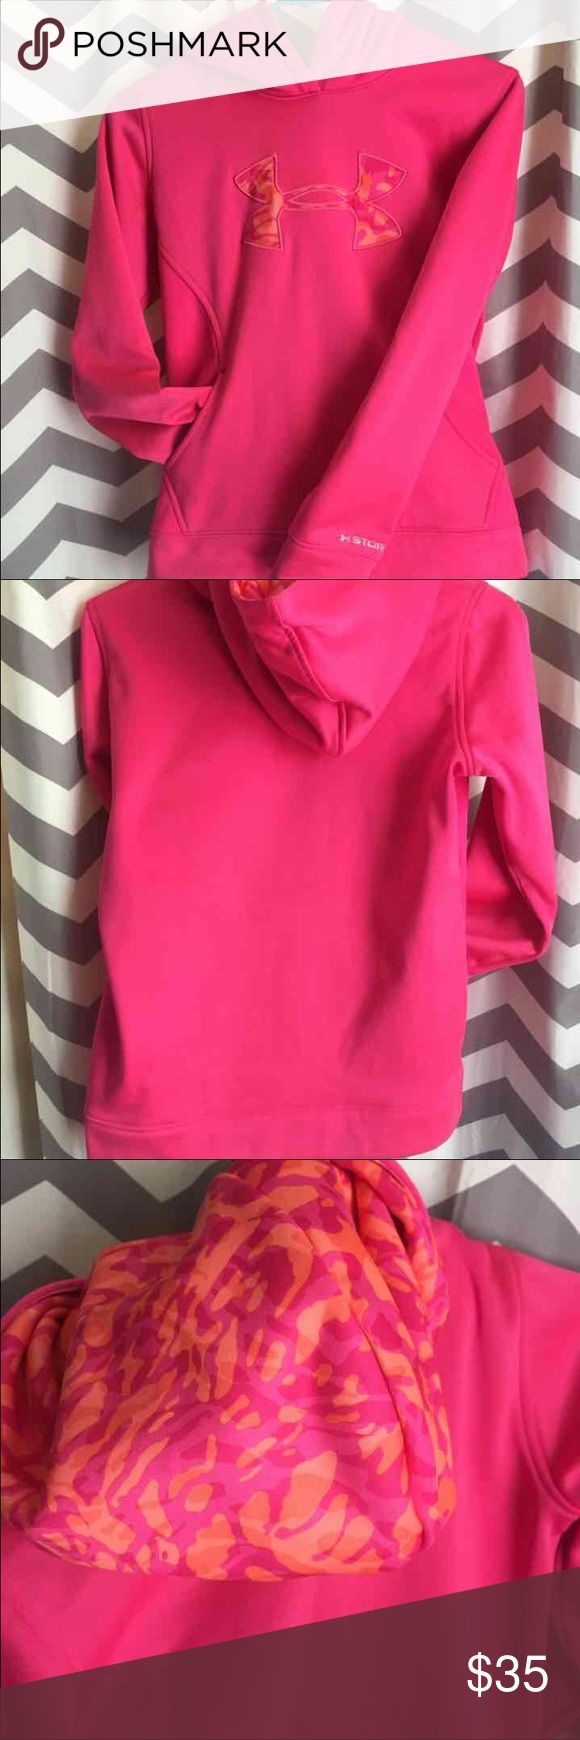 Youth girls Under Armour sweatshirt -no stains, no rips, smoke free home -like new, lots of life left in it, it no longer fits me -very warm inside -pink and orange camouflage print Under Armour Shirts & Tops Sweatshirts & Hoodies